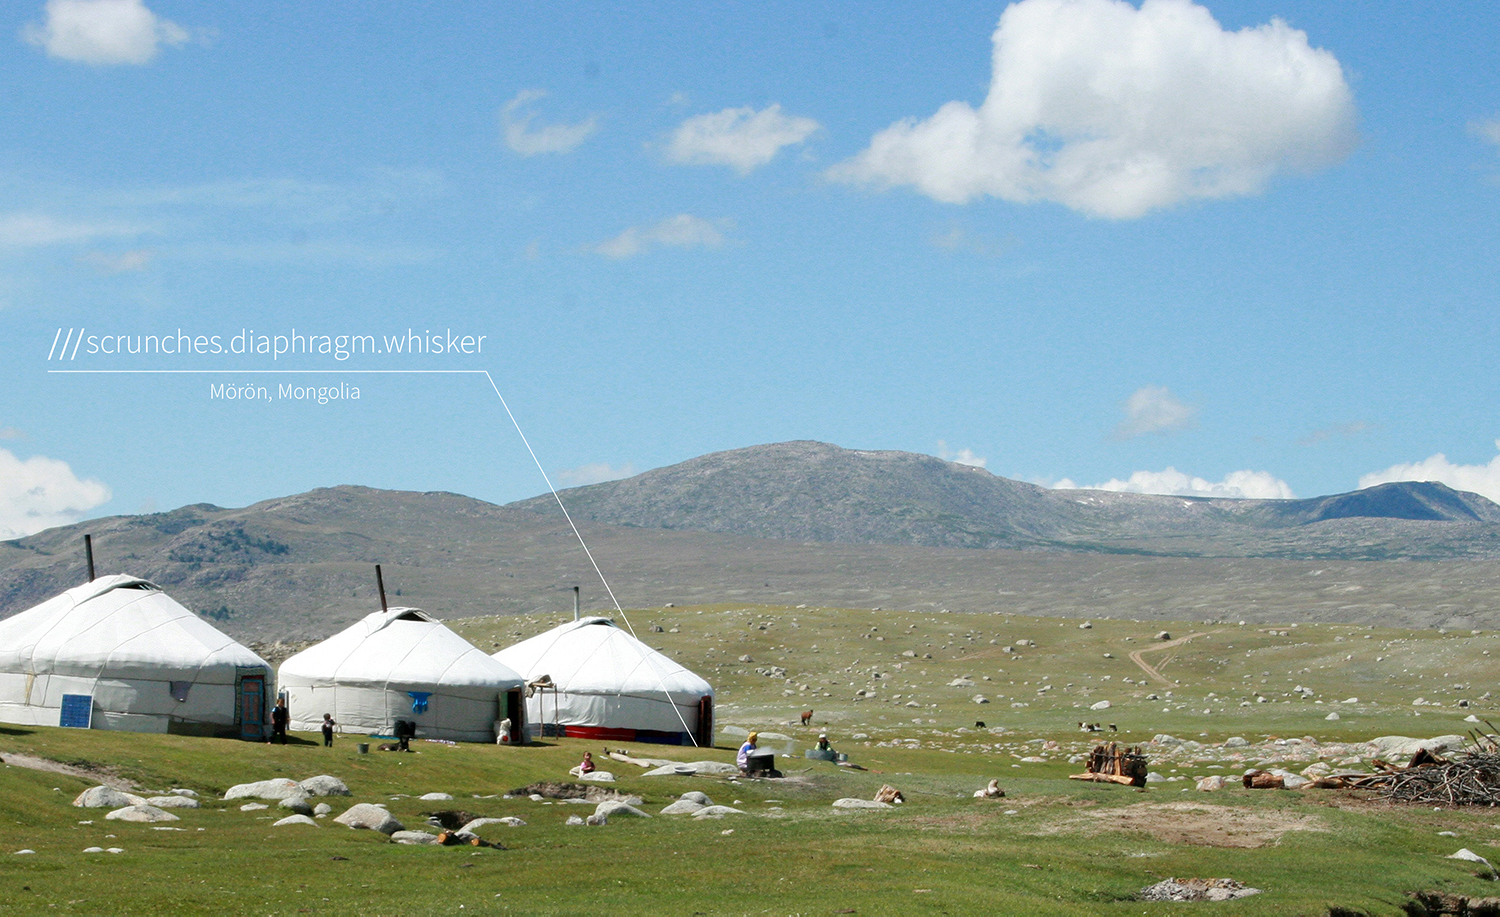 traditional Mongolian houses in fields at 3 word address scrunches.diaphragm.whisker